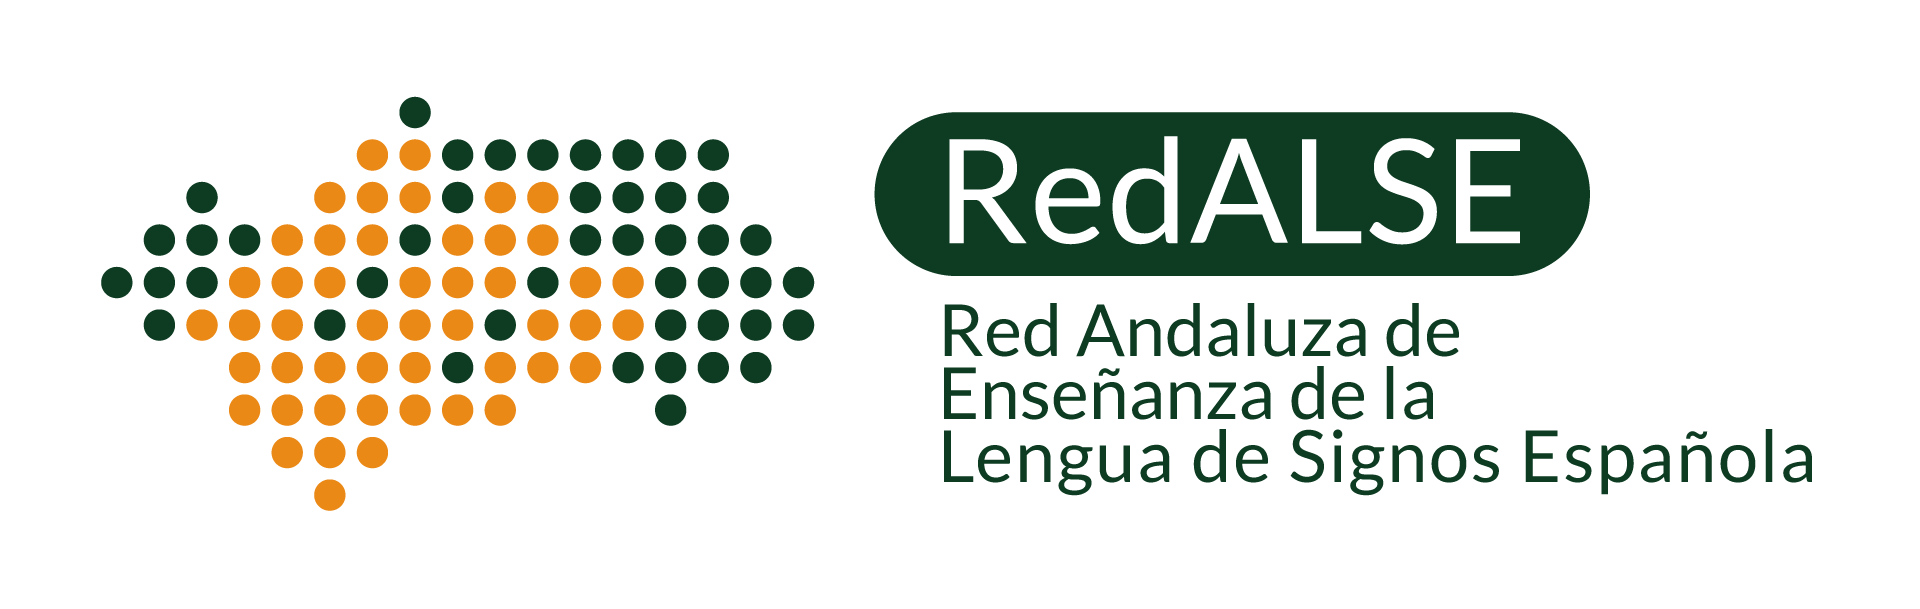 RedALSE